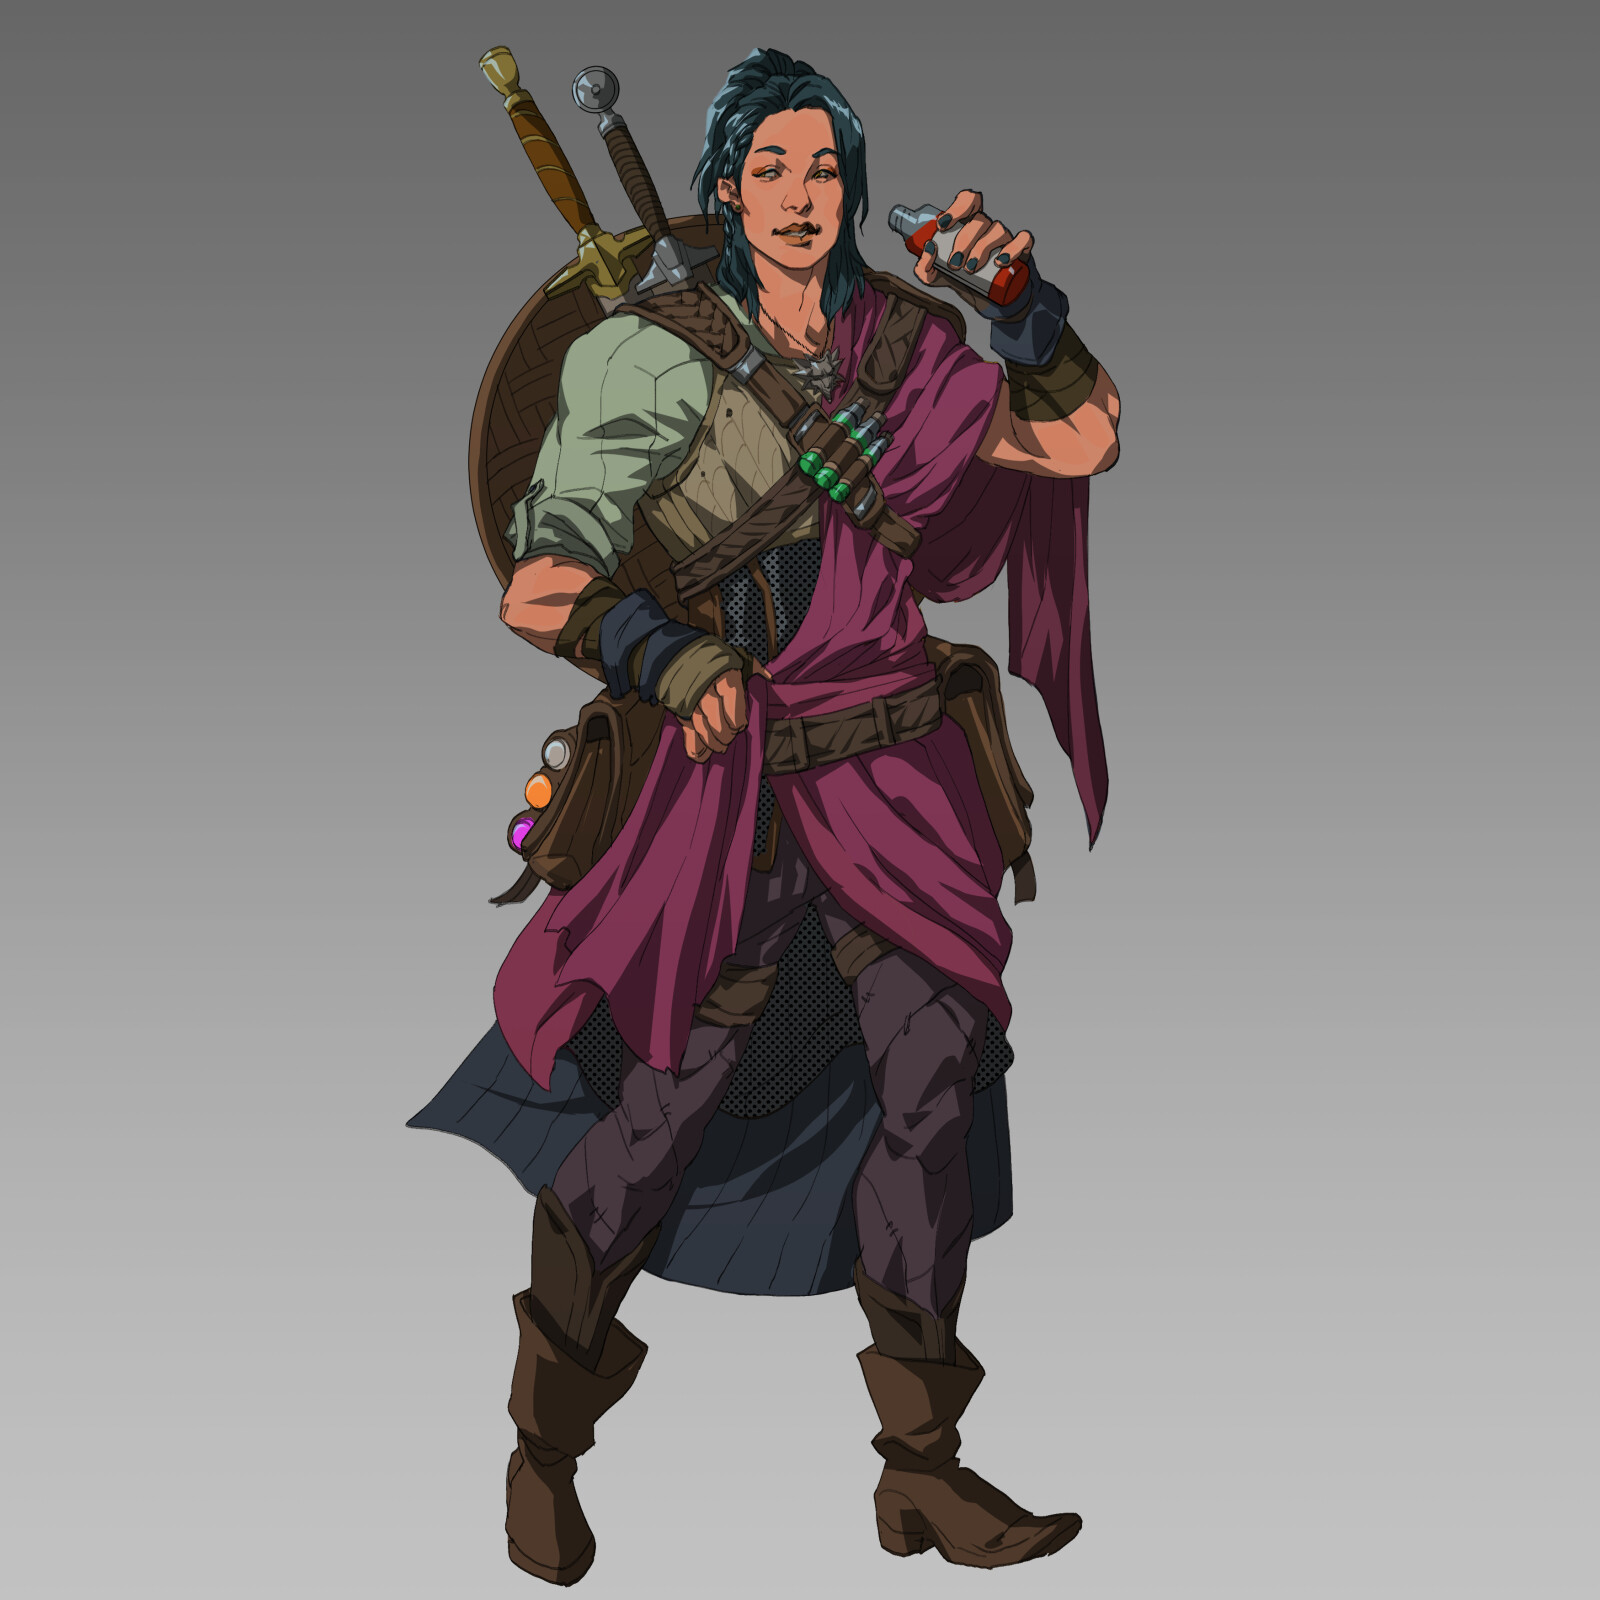 Lan from the school of the crane. A potion specialist who has made her way west in search of the most potent ingredients and the finest wines. She has kept a wolf medallion from a fallen witcher she met on her travels.